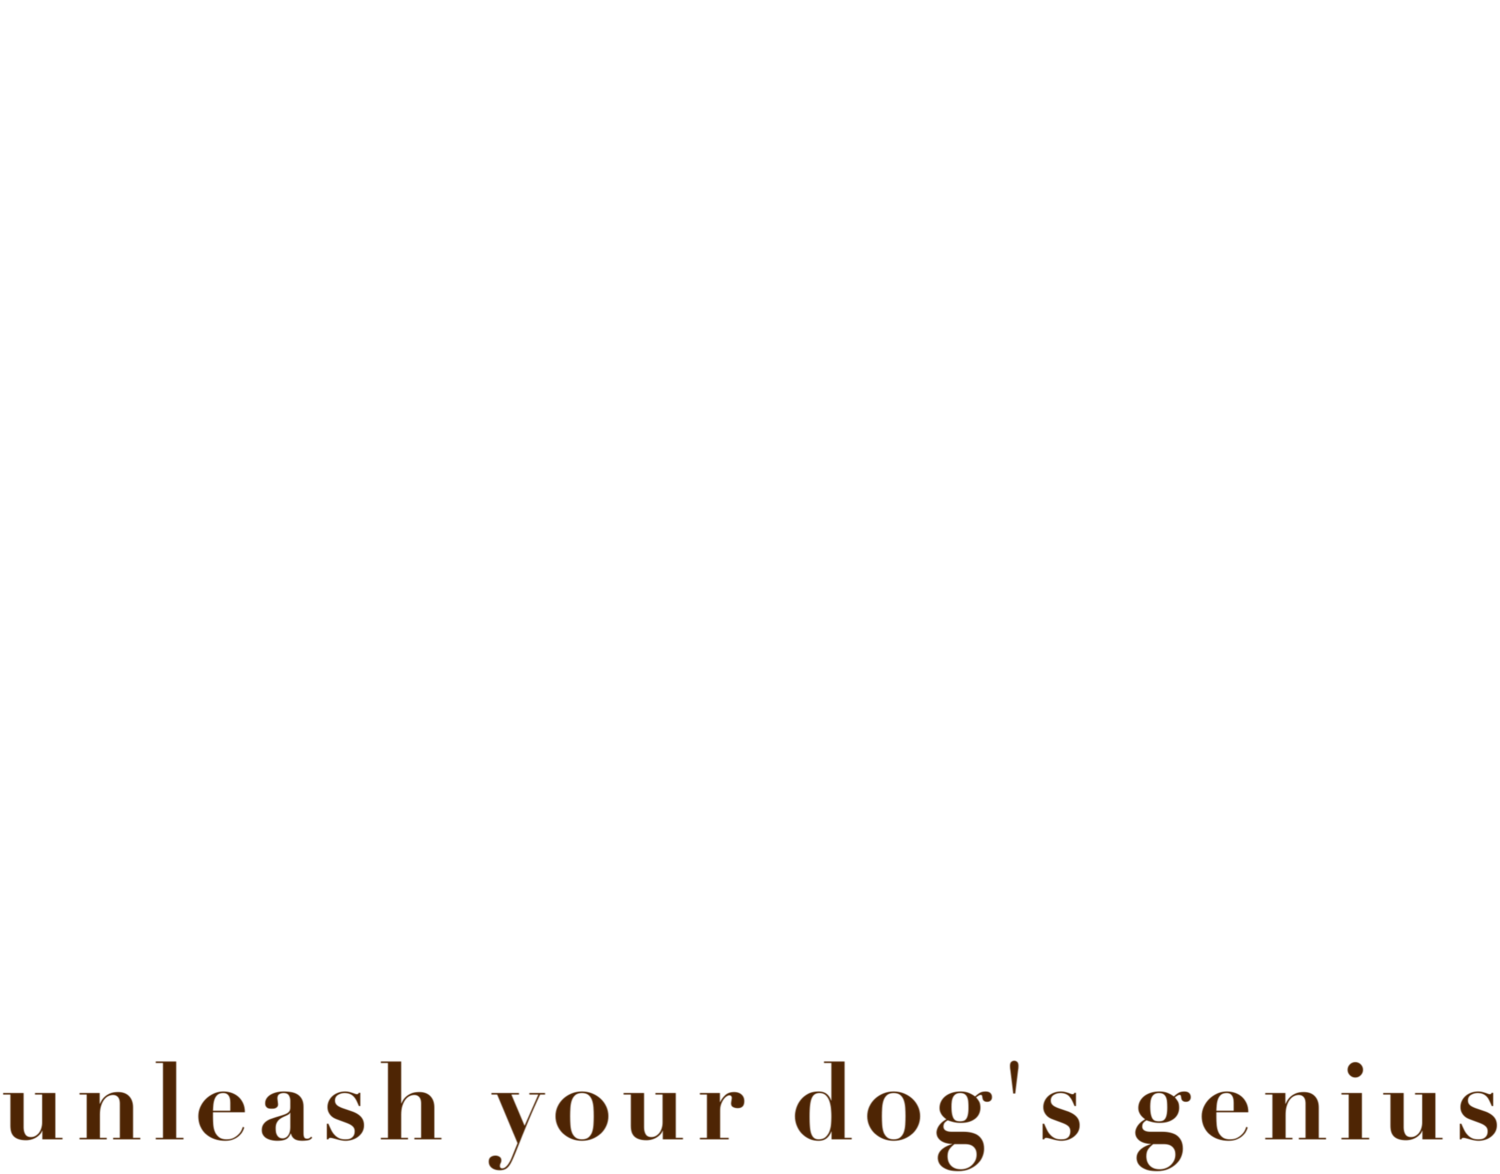 Dog Training | Dog Savvy Los Angeles